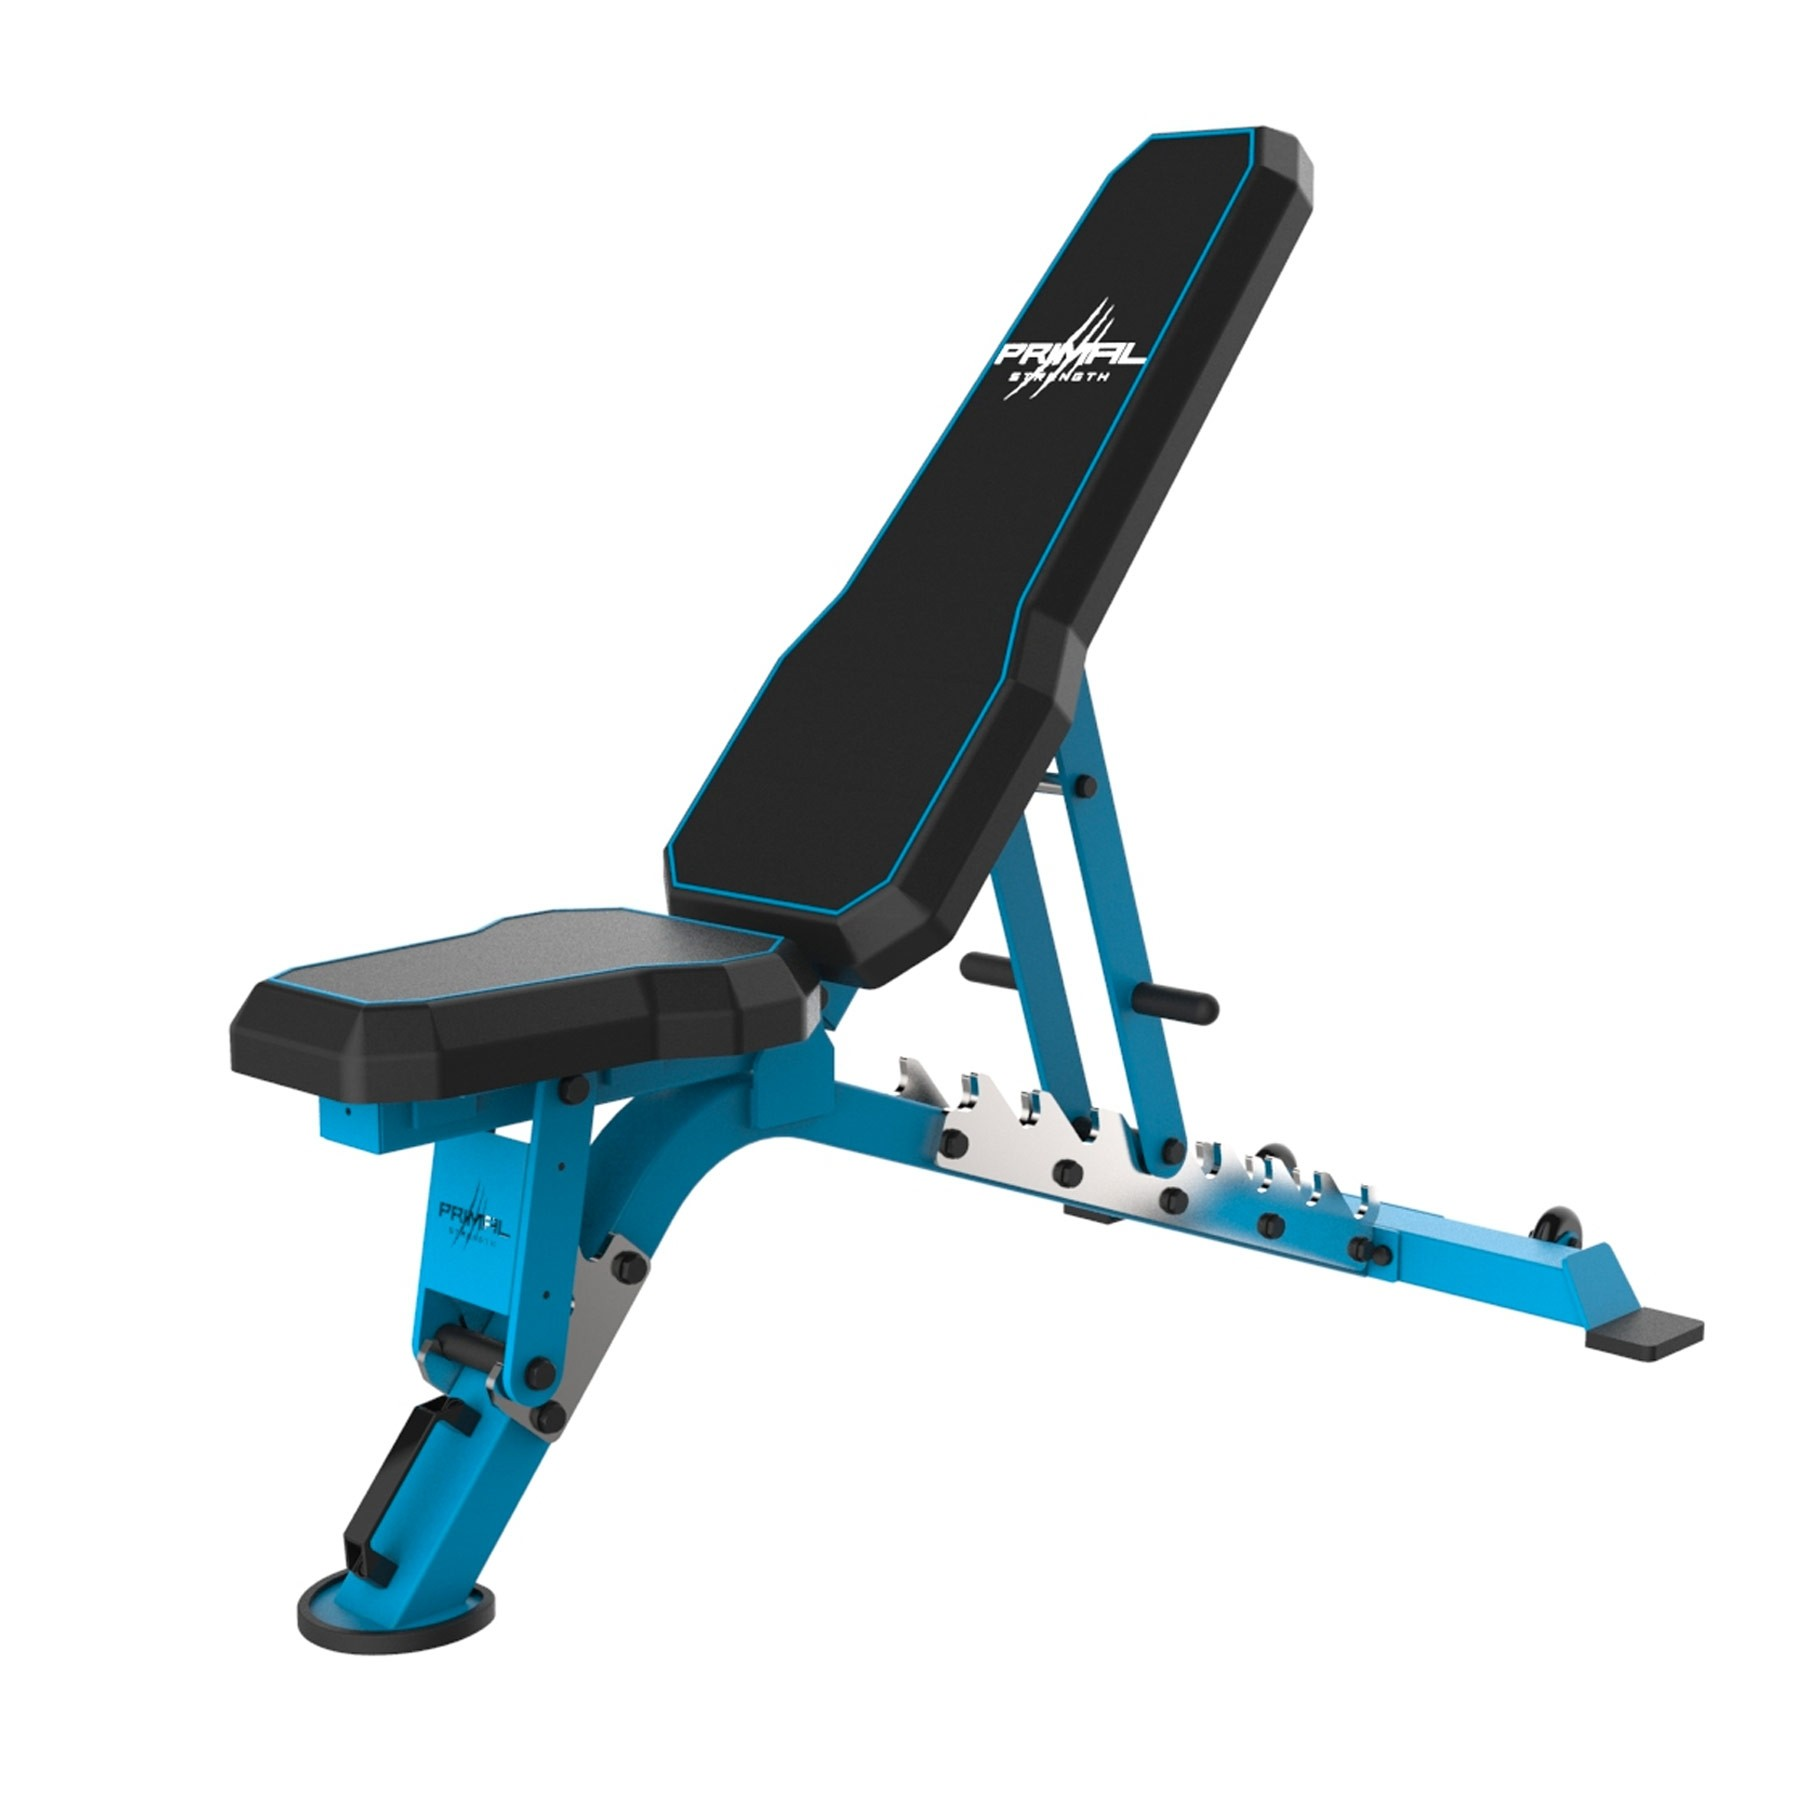 Primal Strength Commercial V2 FID Bench with Chrome Supports (Blue)